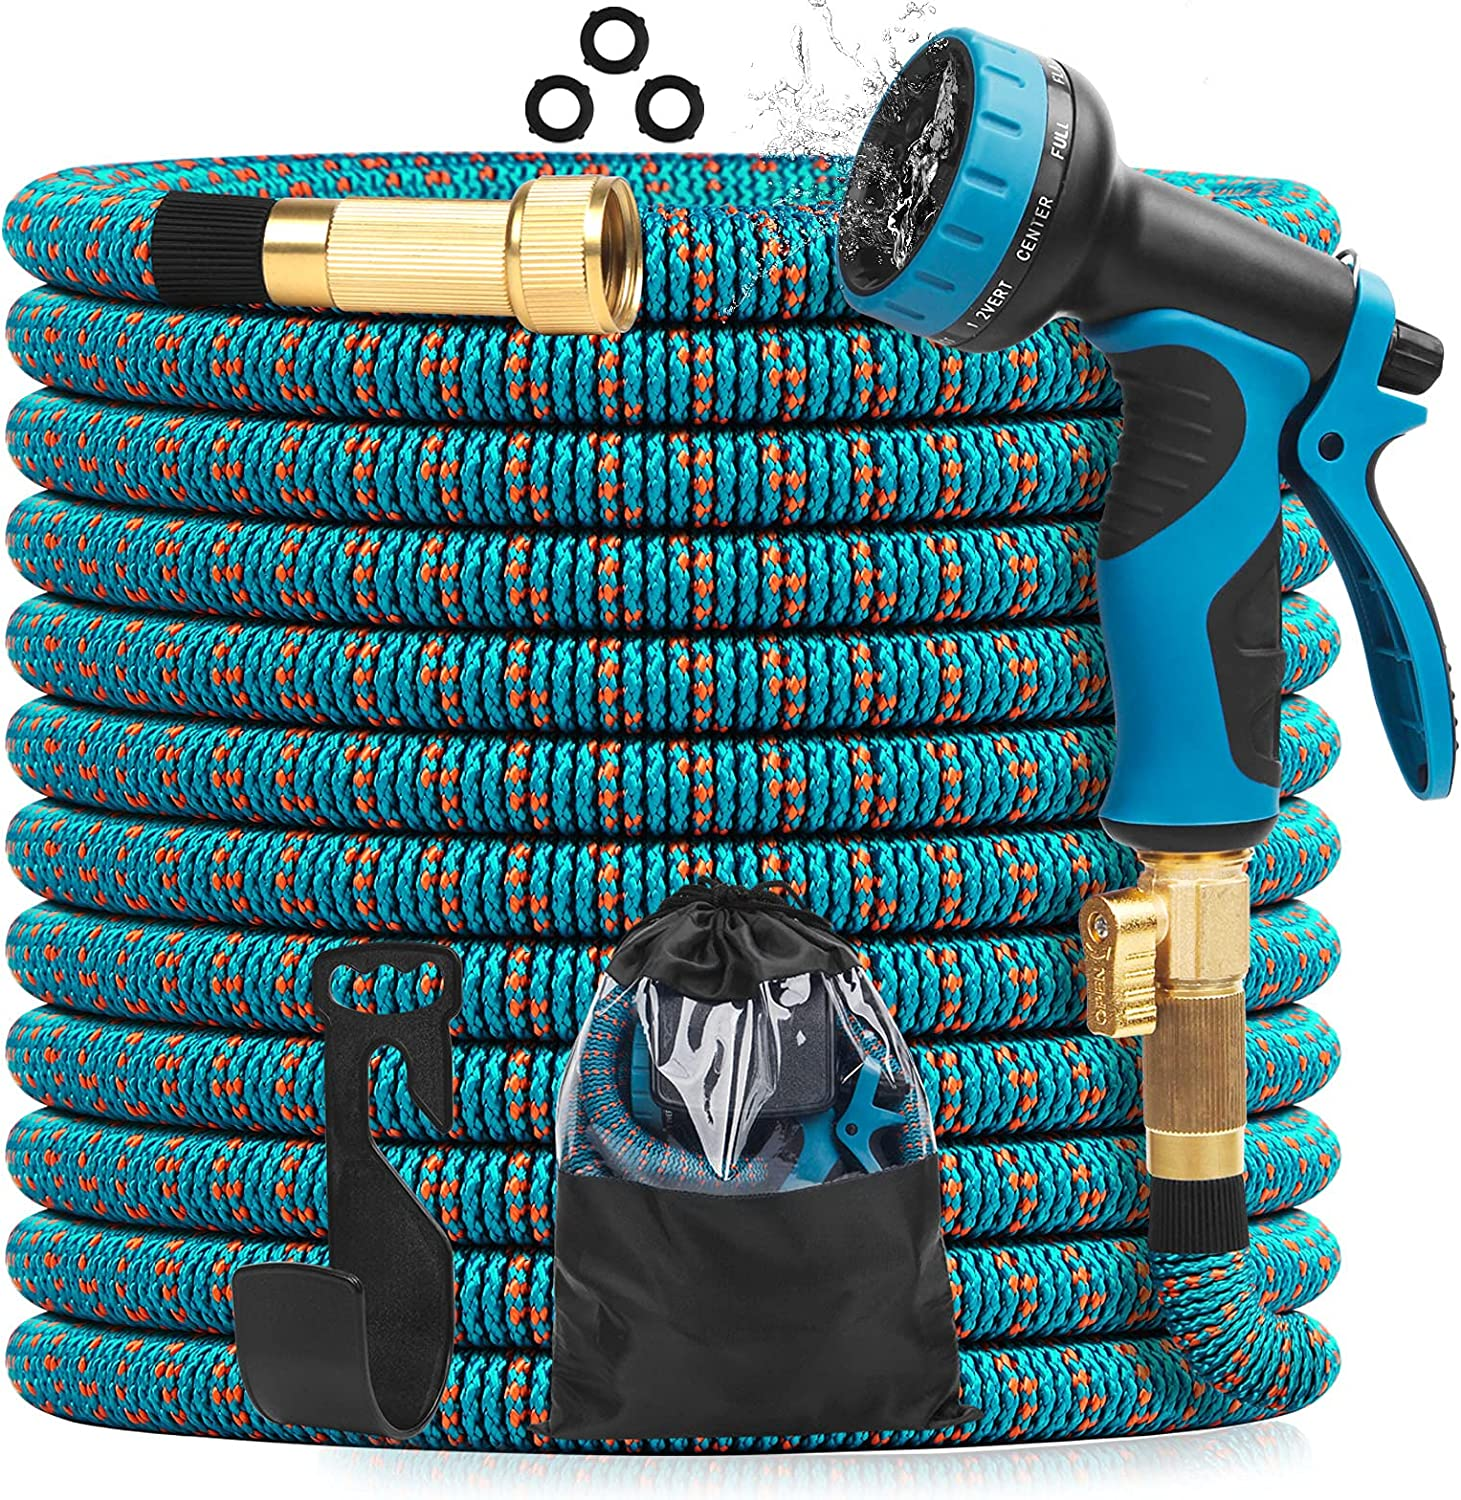 Scamona Expandable Garden Hose 100ft - Flexible Hose with 10-Way Spray Nozzle - Durable 3 Layer Latex & Extra Strength 3750D Polyester Fabric - 3/4 Inches Solid Brass Fitting Retractable Hose Pipe